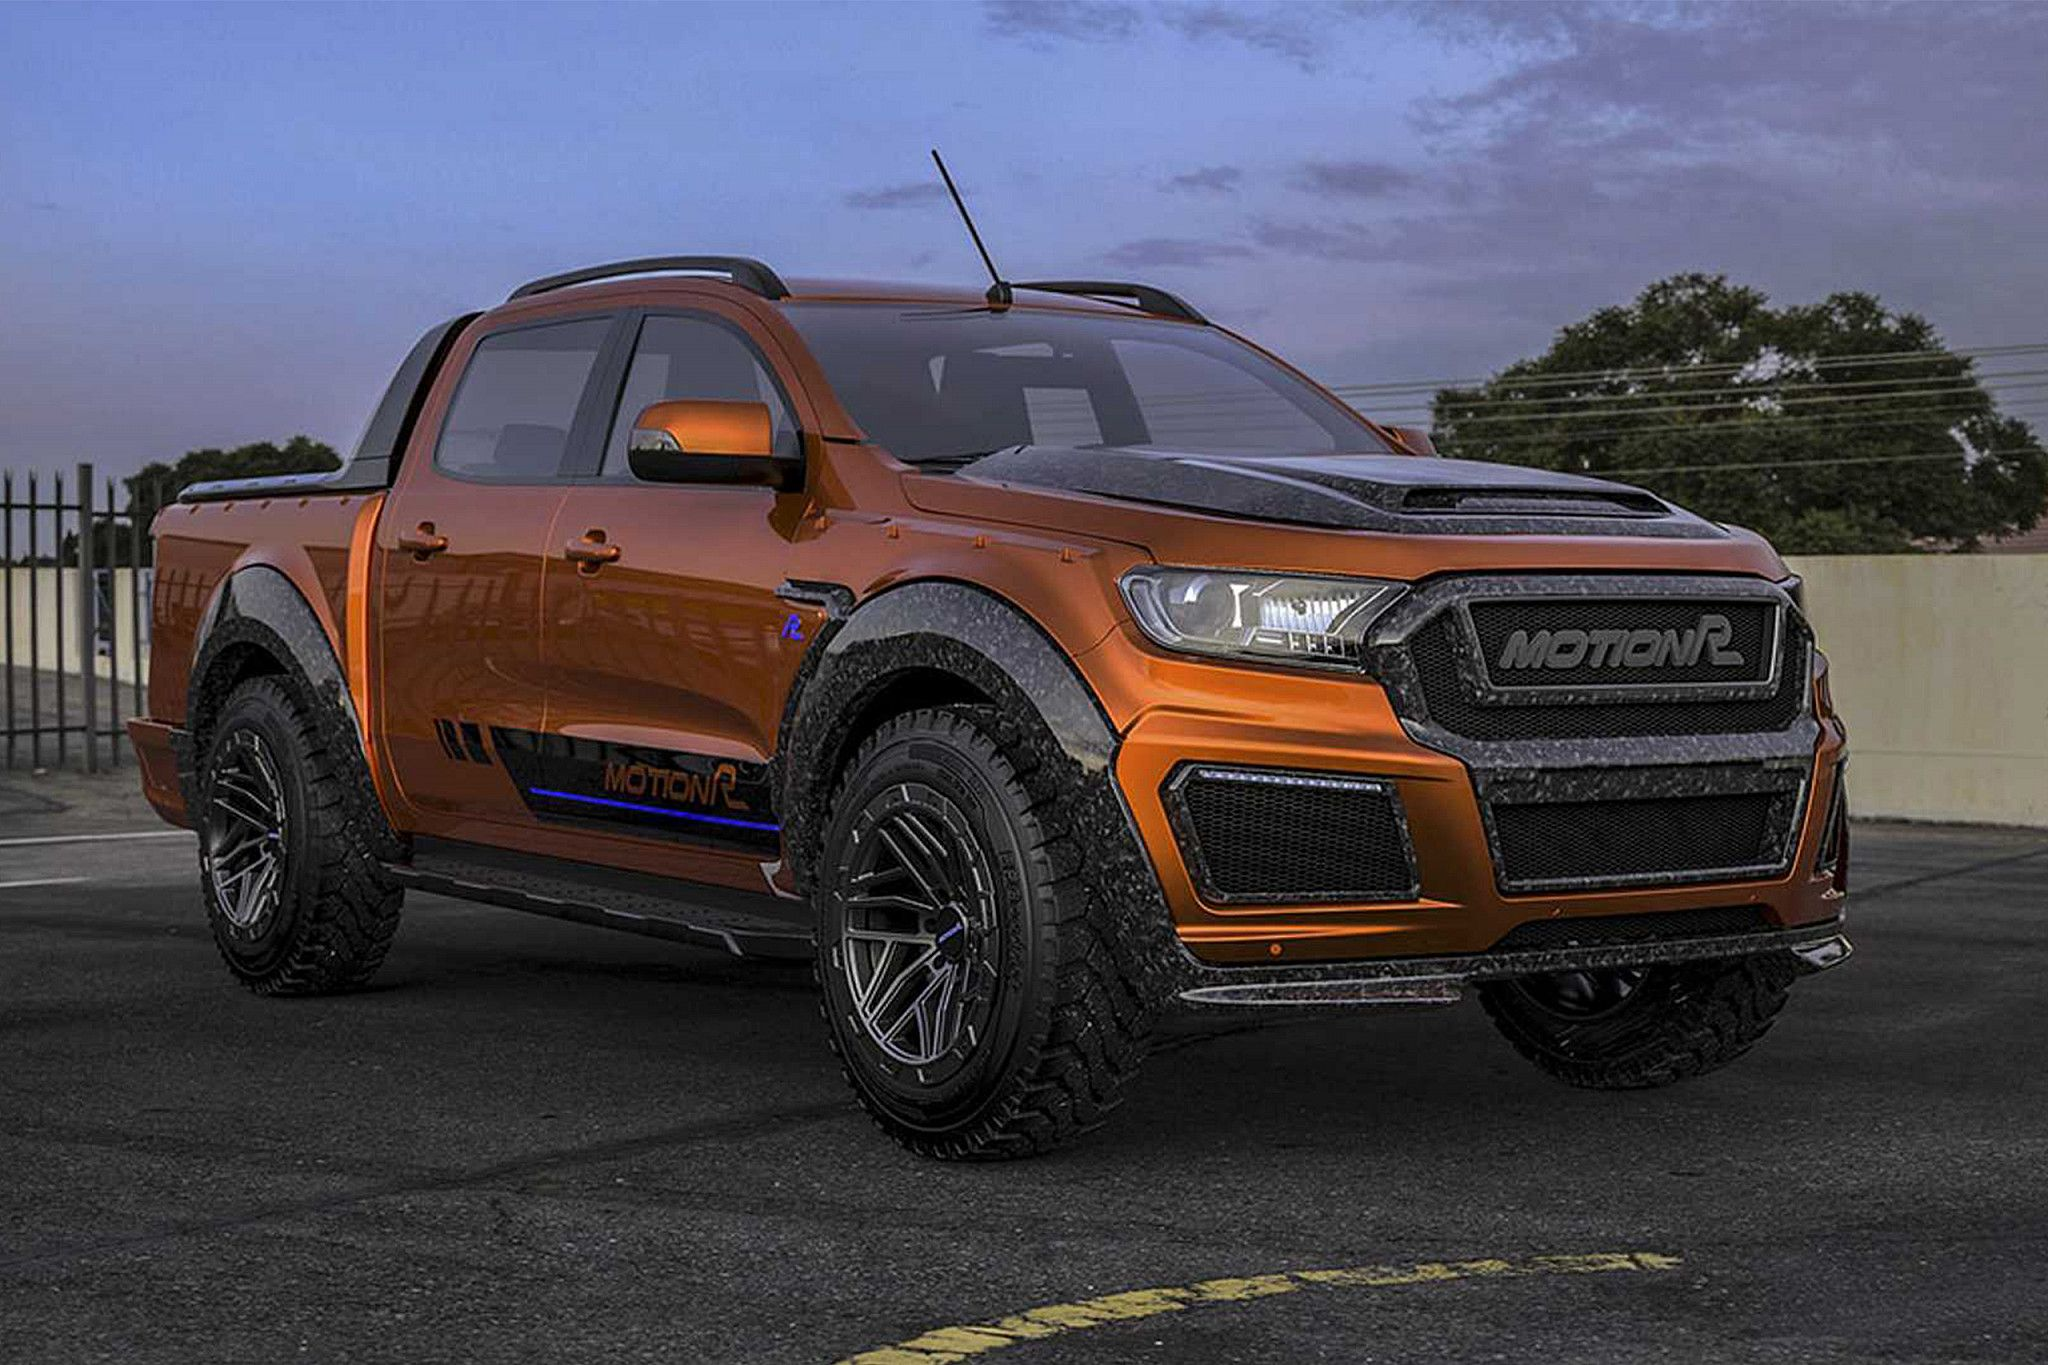 Mundo Quatro Rodas Tunning This Ford Ranger Is Dressed Up In Carbon Ford Ranger Super Cars Ford